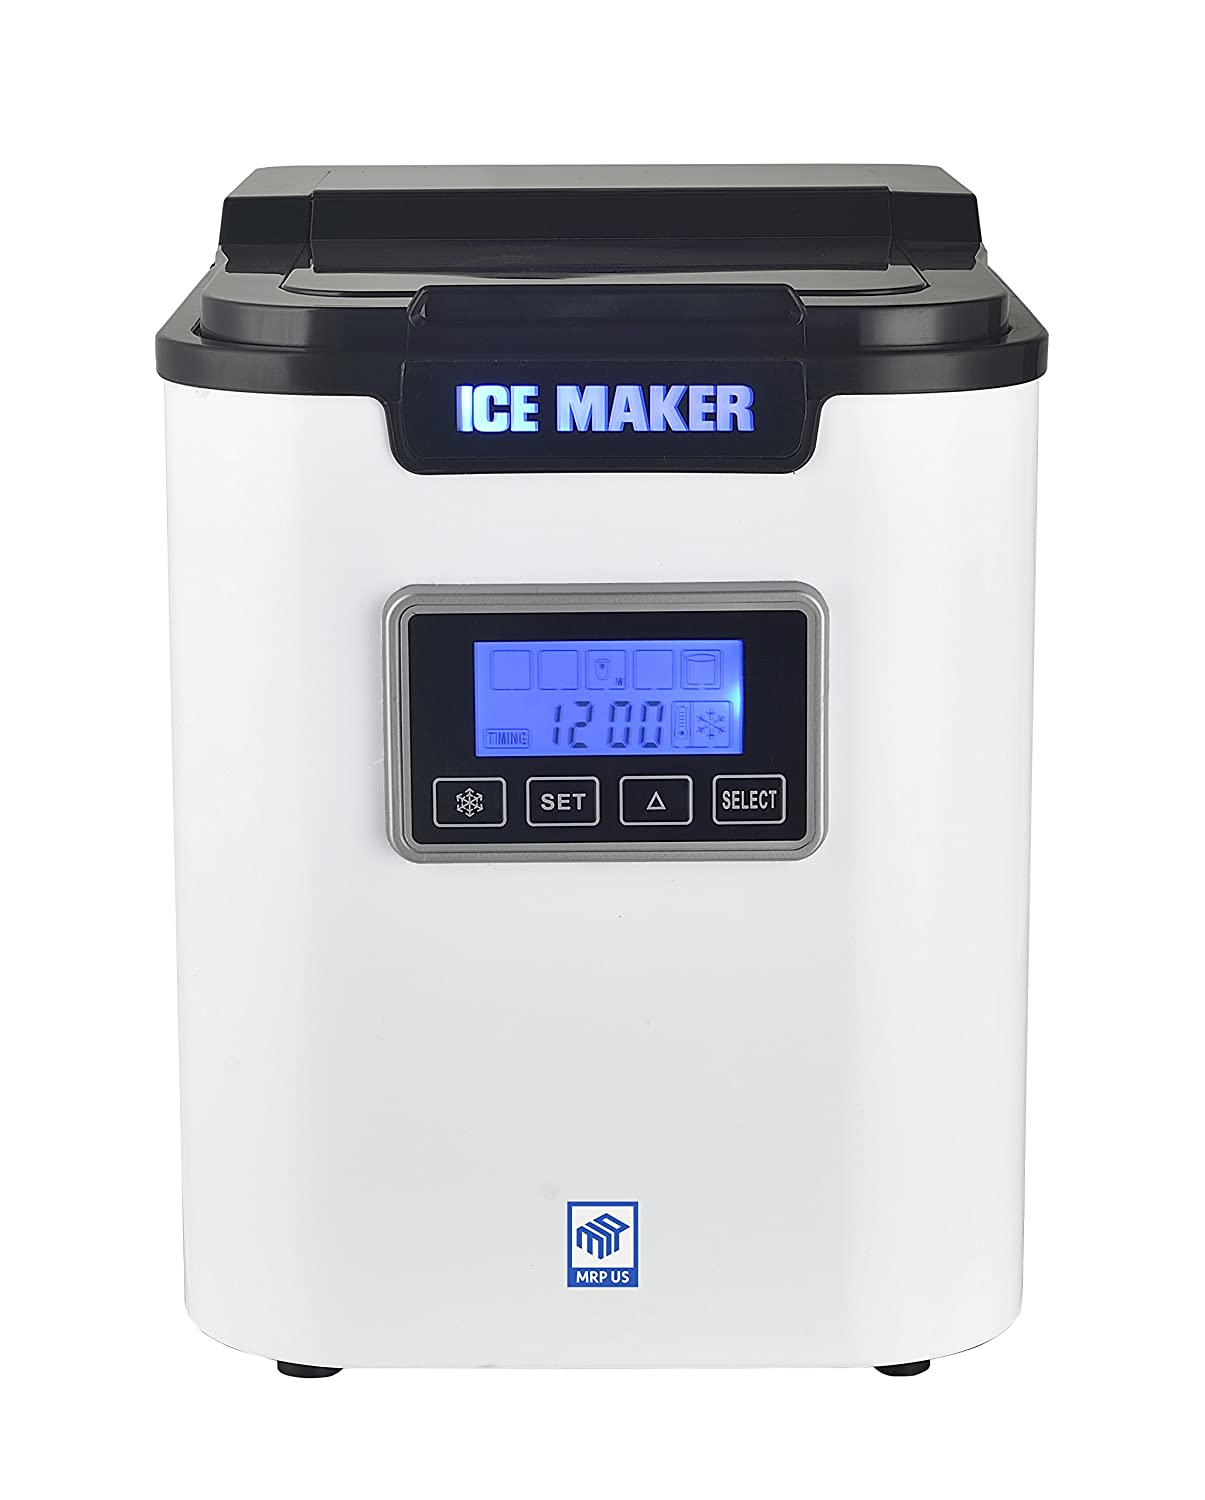 Voted Best NEW Portable Ice Maker